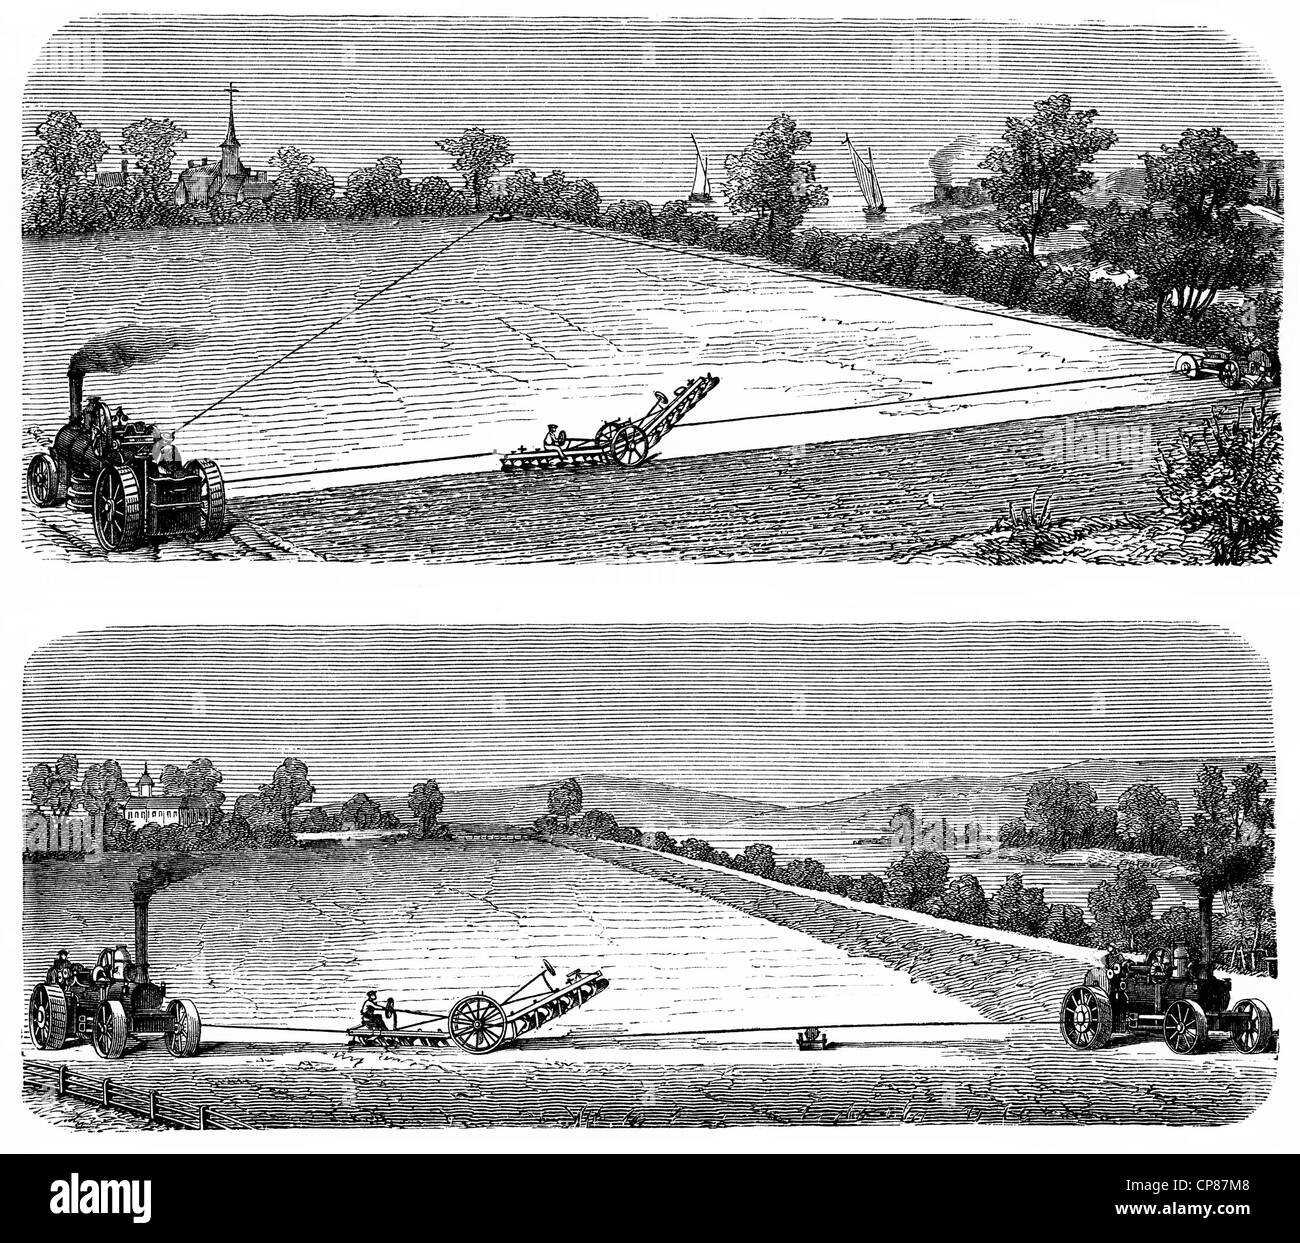 One and two-machine steam plough systems at work, agricultural tractor or locomotive powered by a steam engine, - Stock Image